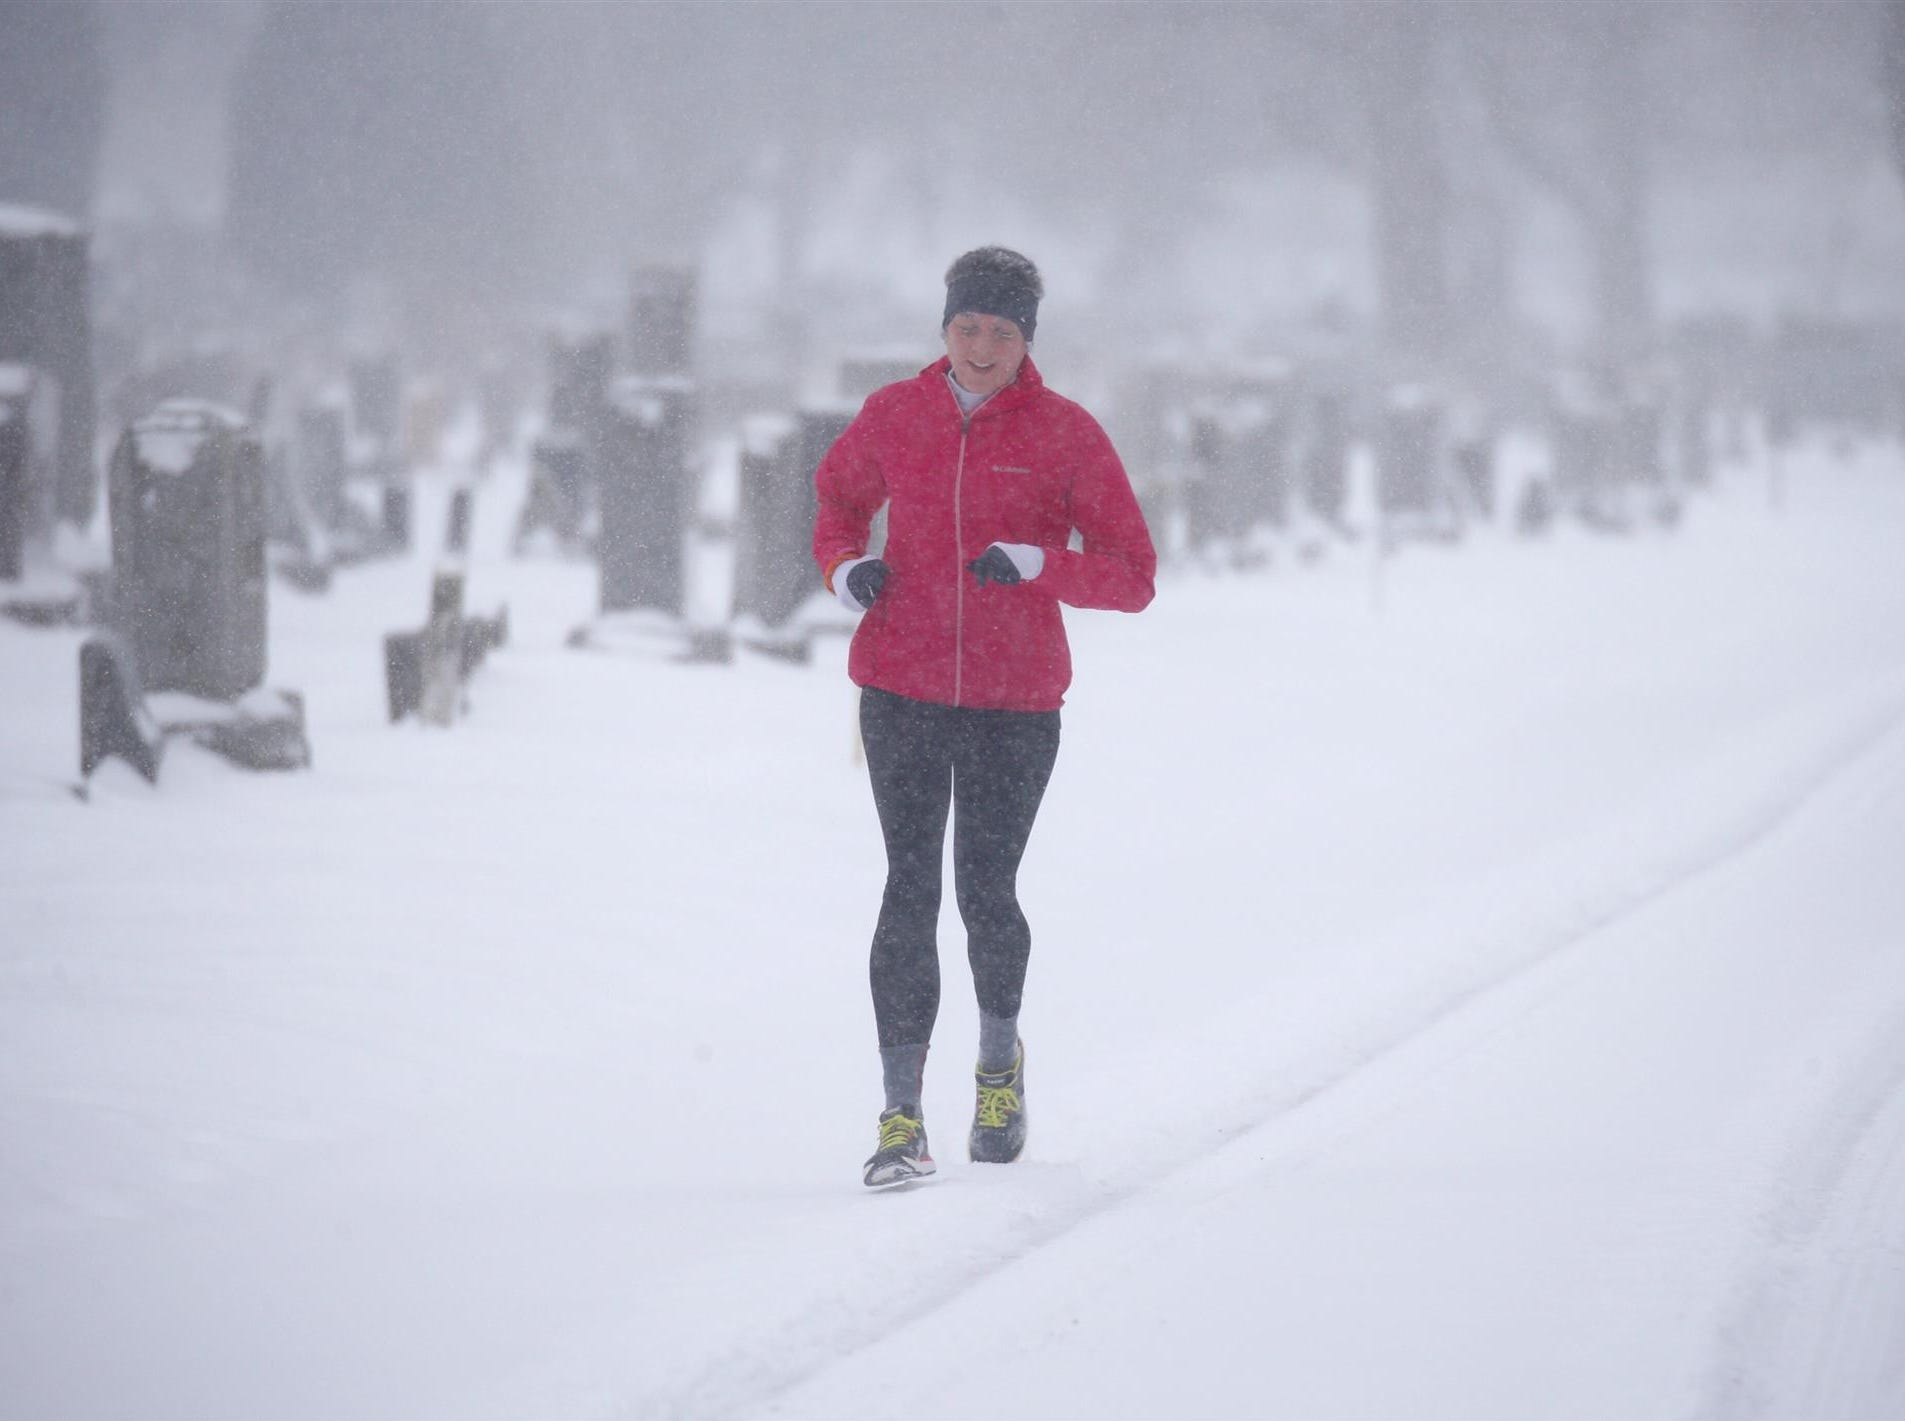 Ashley Peppriell, a graduate student at the University of Rochester, runs through Mount Hope Cemetery as heavy snow moves into the area.